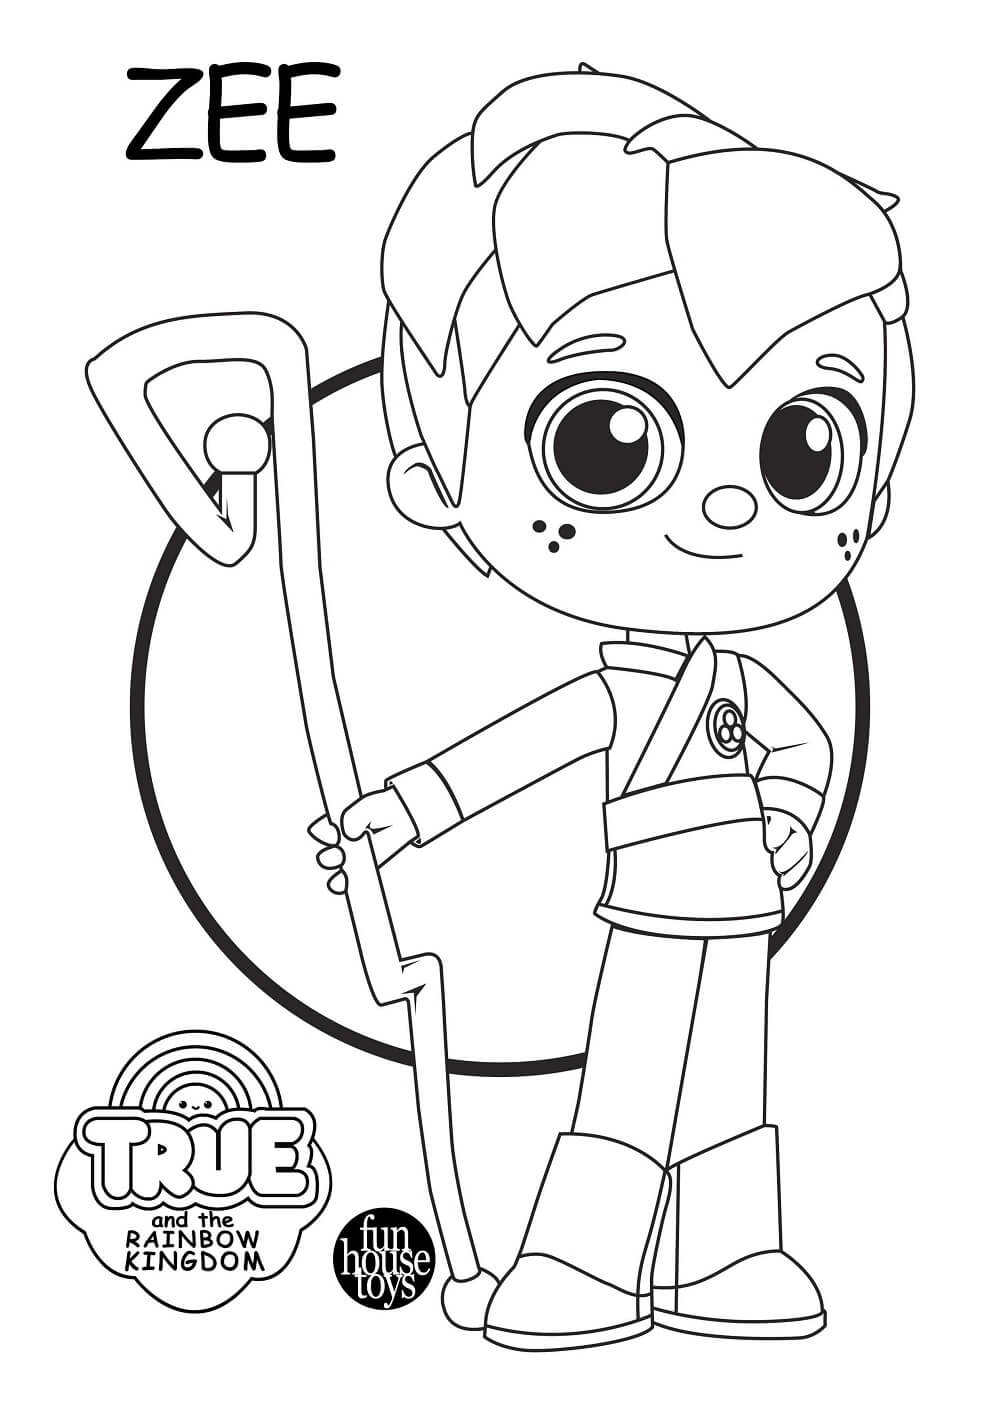 15 Free Printable True And The Rainbow Kingdom Coloring Pages